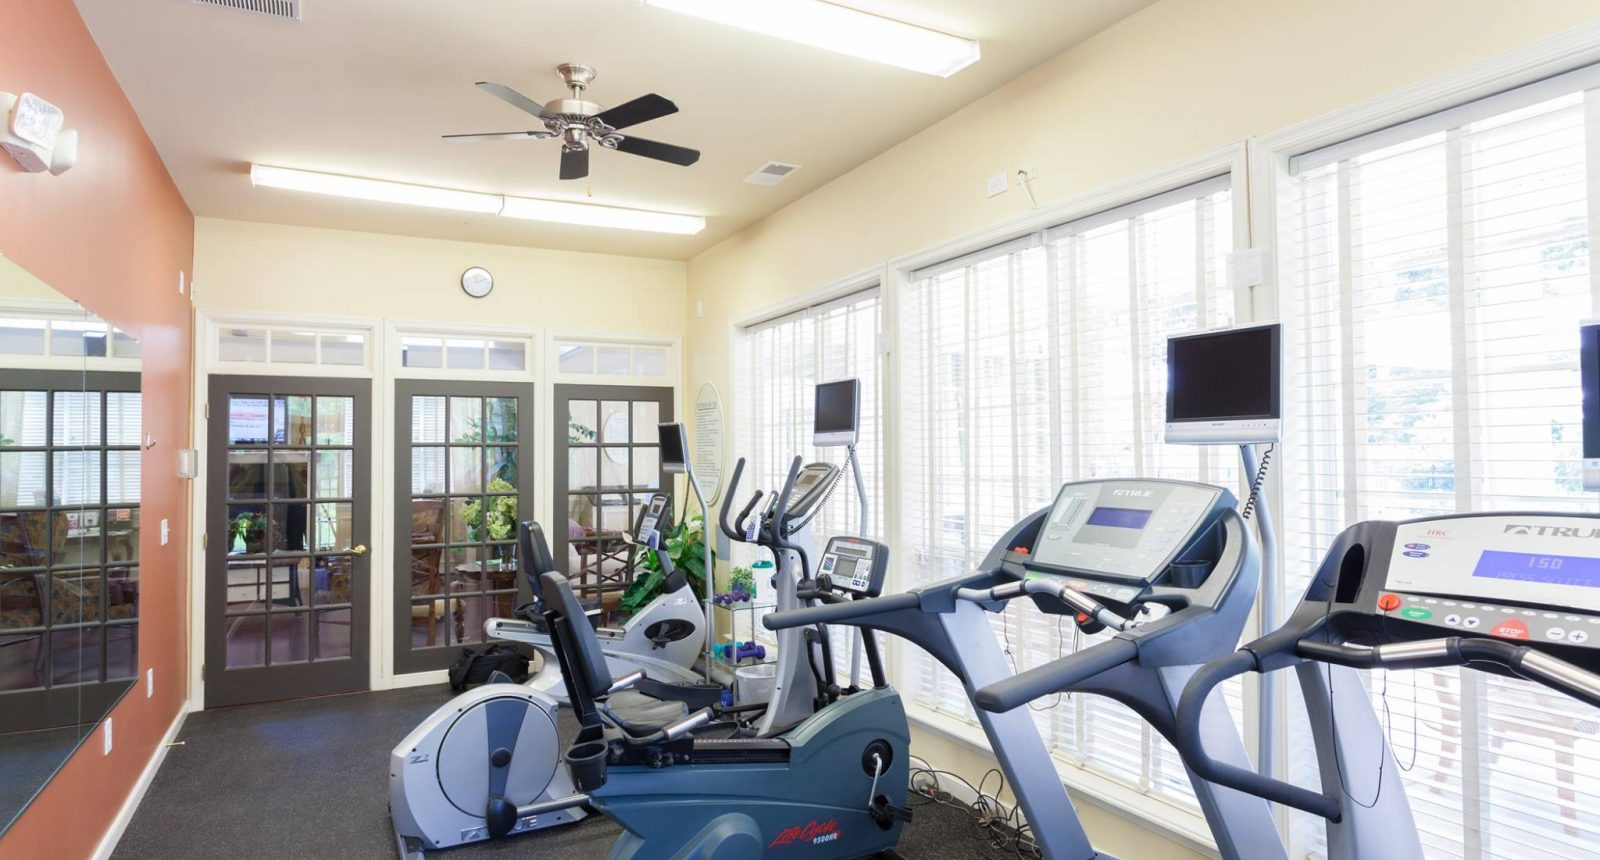 Gym room with exercise equipment at Alexander Heights